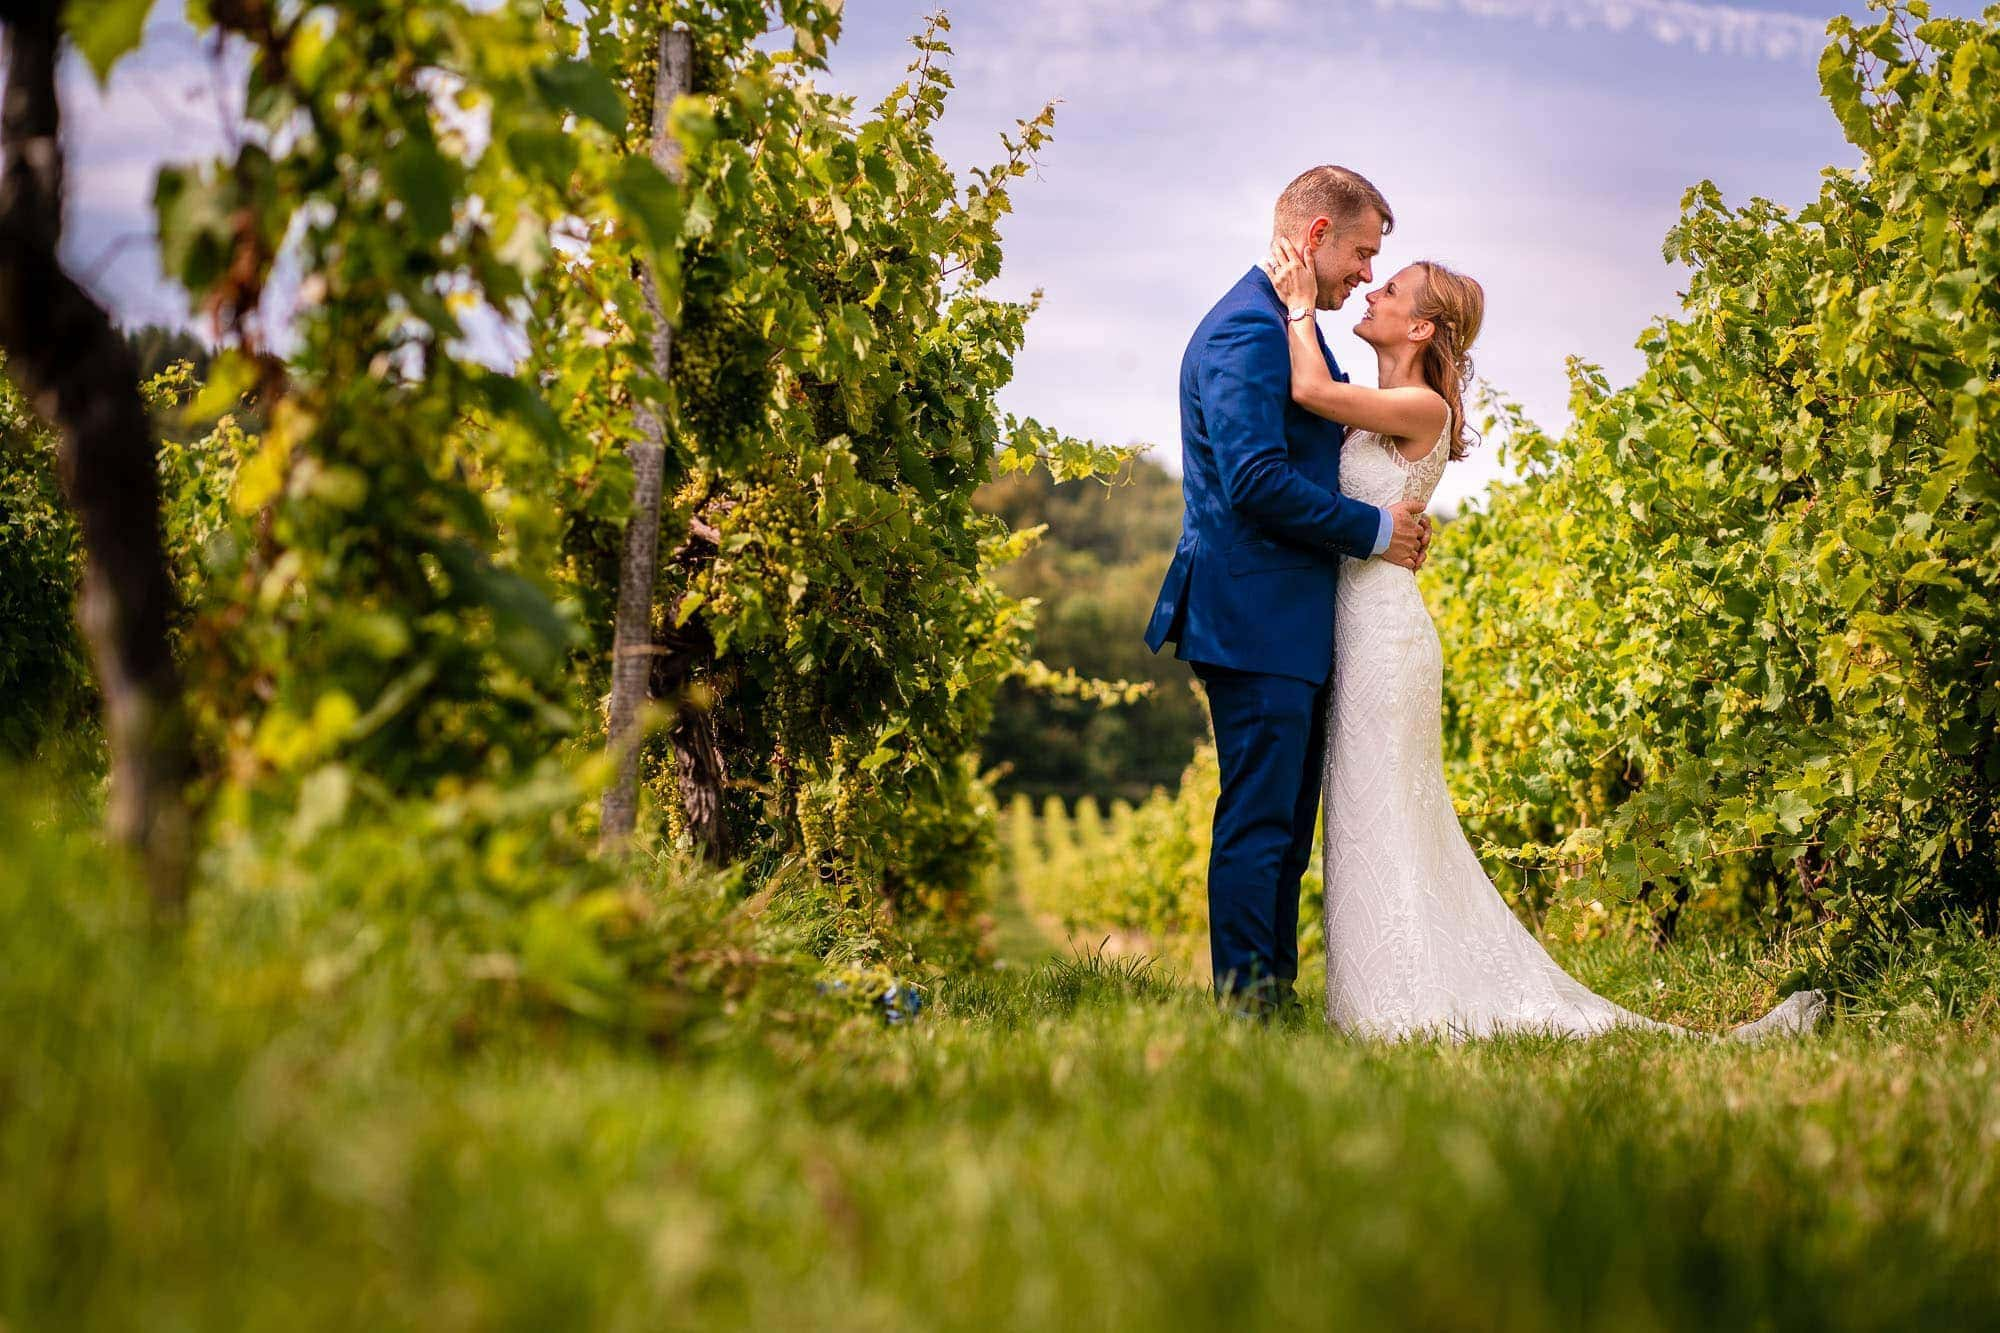 Small Family Wedding at Denbies - Couple Portrait in among the vines